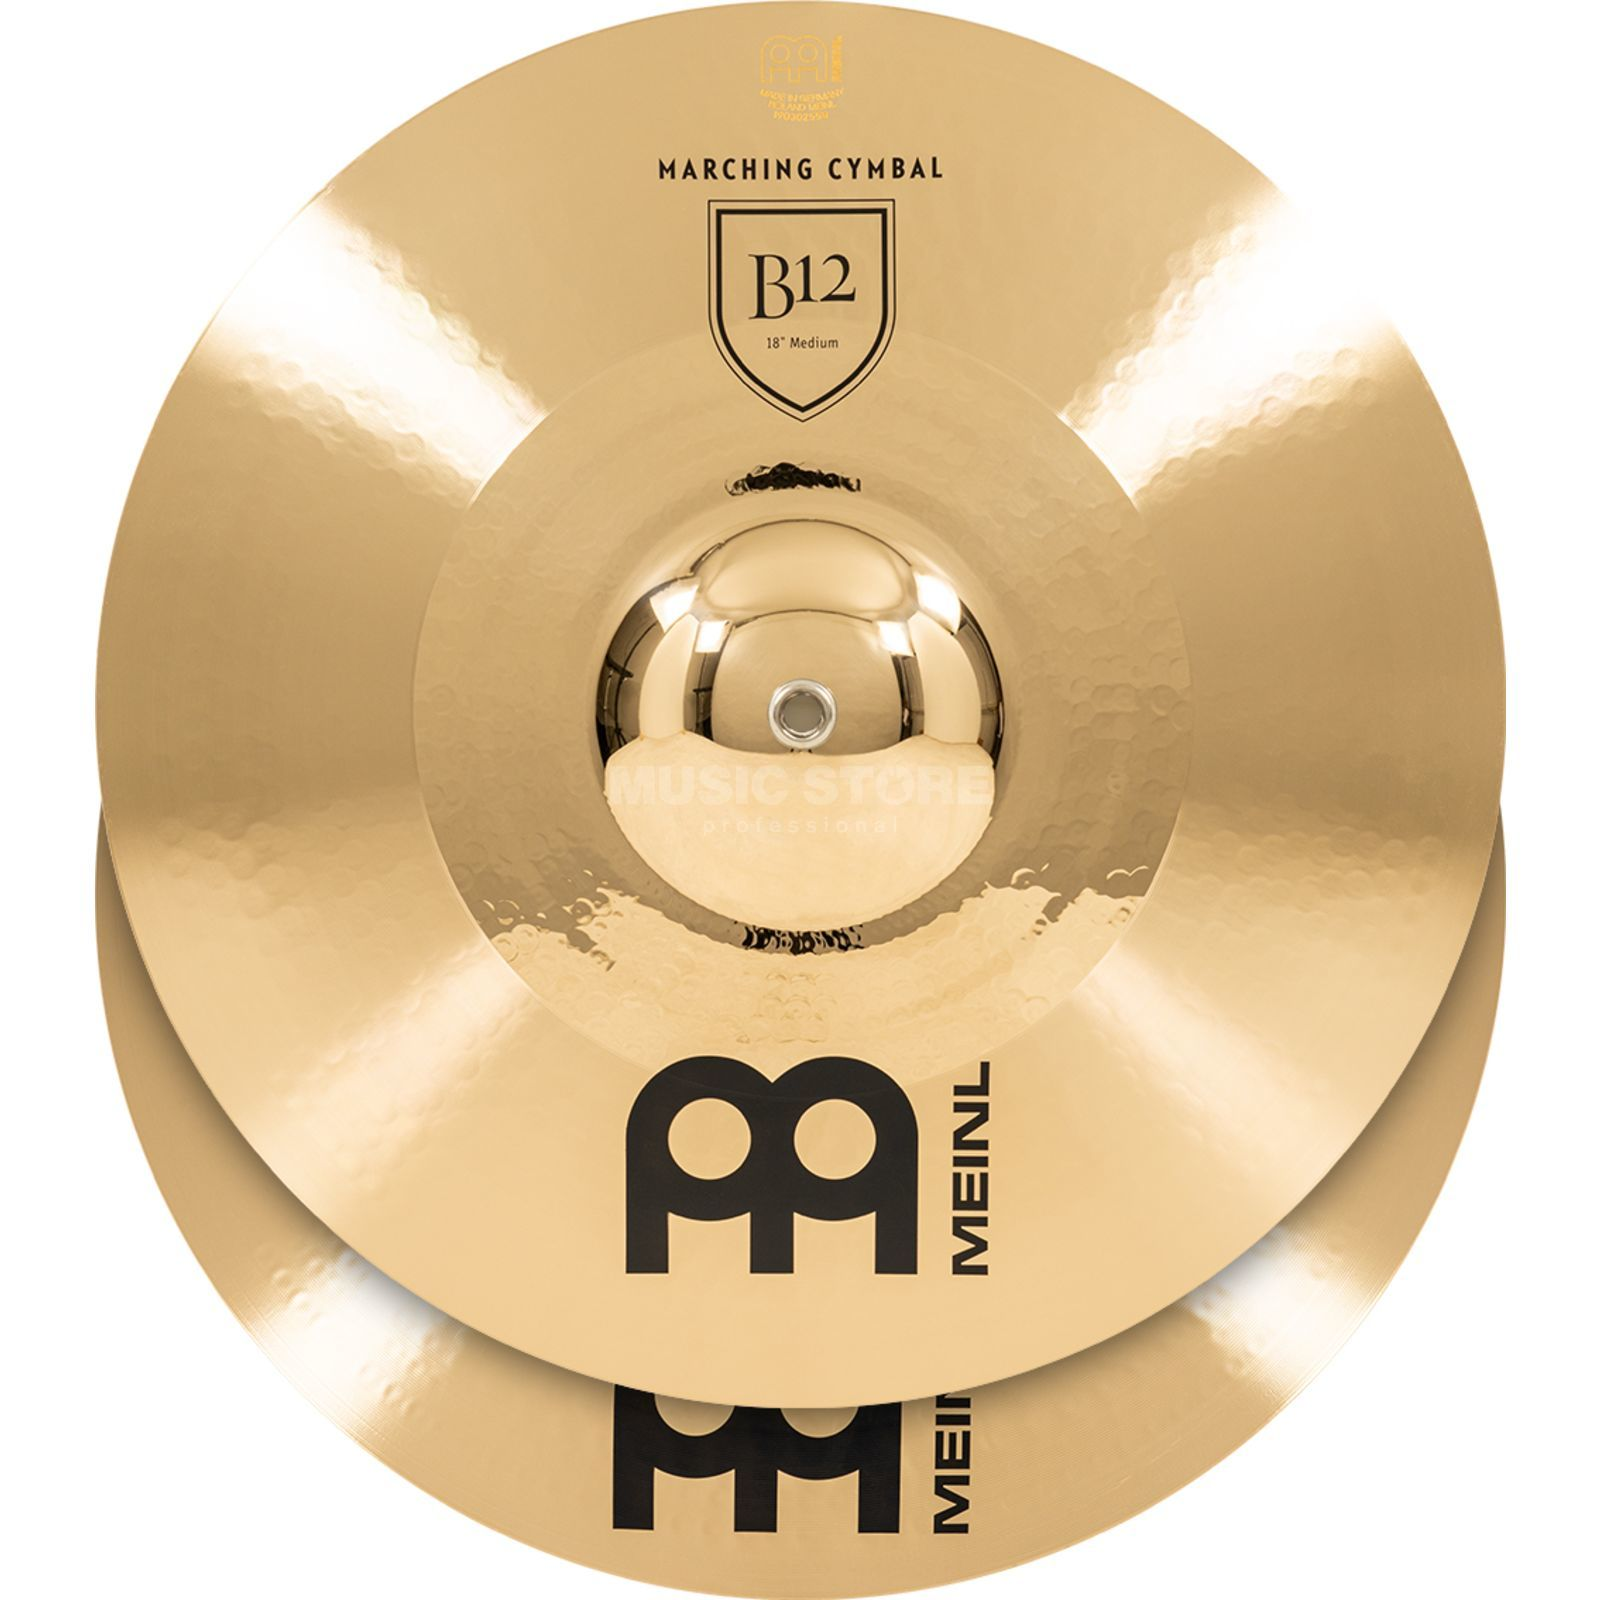 "Meinl B12 Marching Cymbals 18"", Medium, MA-B12-18M Productafbeelding"